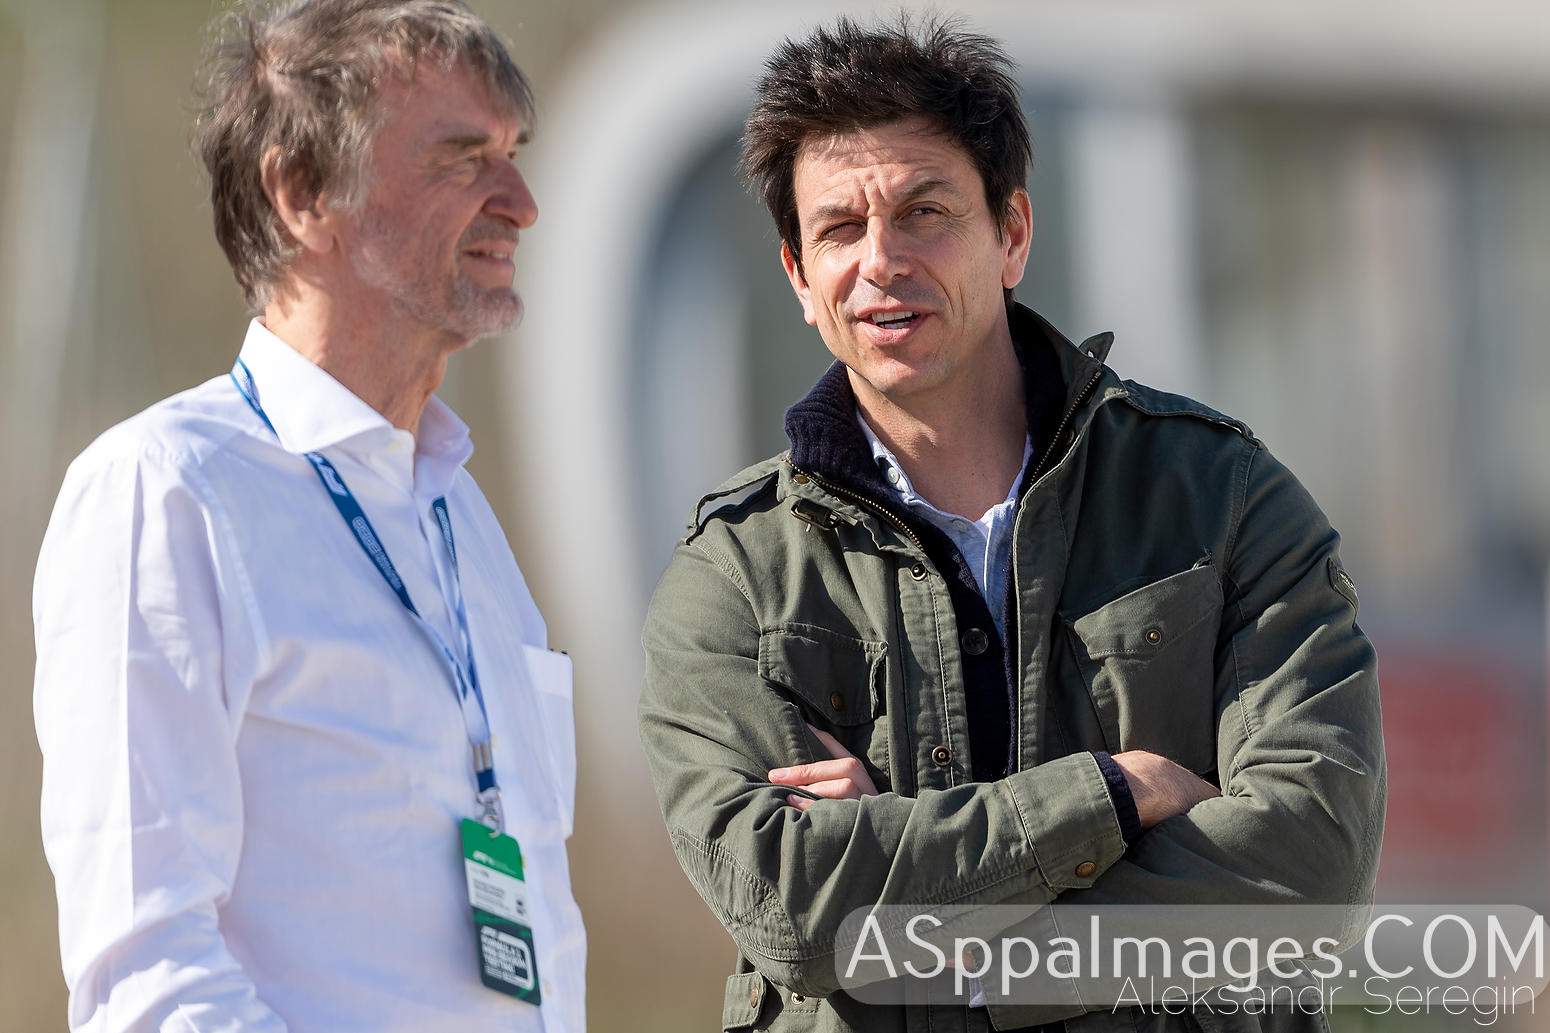 30.2020.FIA_.F1.Test_.Barcelona.Day_.4.MER_.ASppaImges.COM_ by ASppaImages.COM | Aleksandr B. Seregin (c).